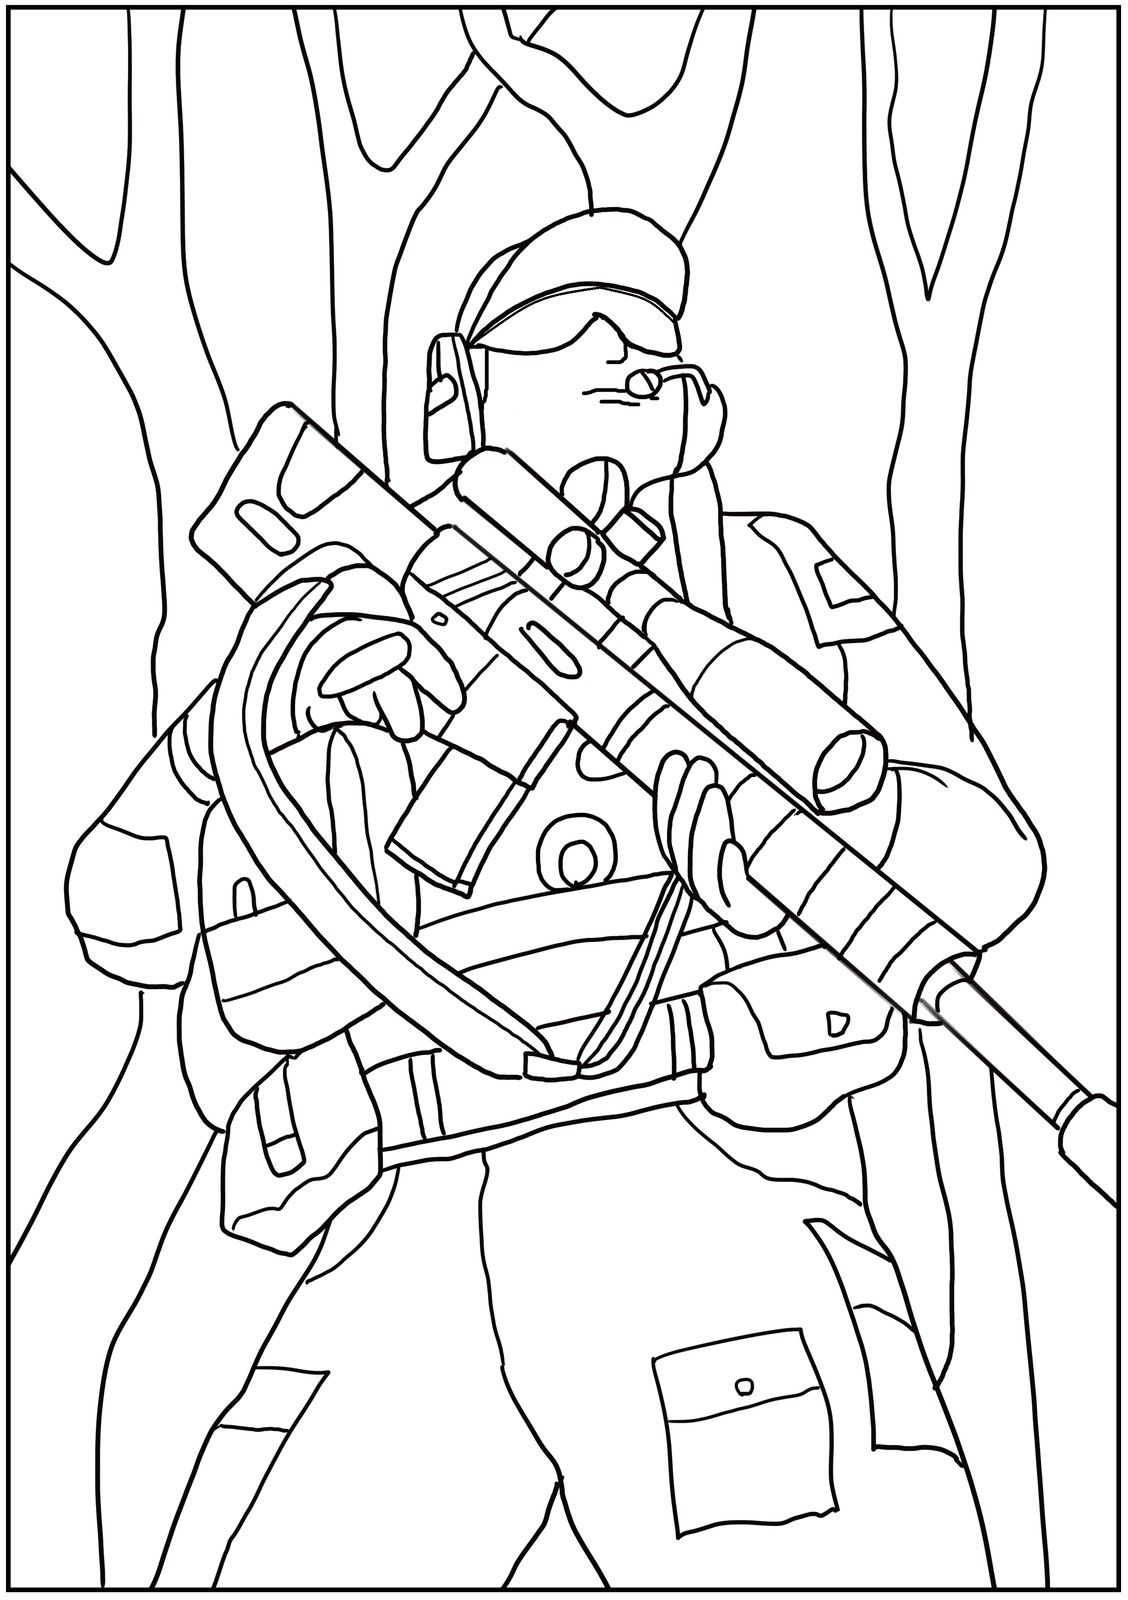 New coloring books with brave soldiers, US Marines